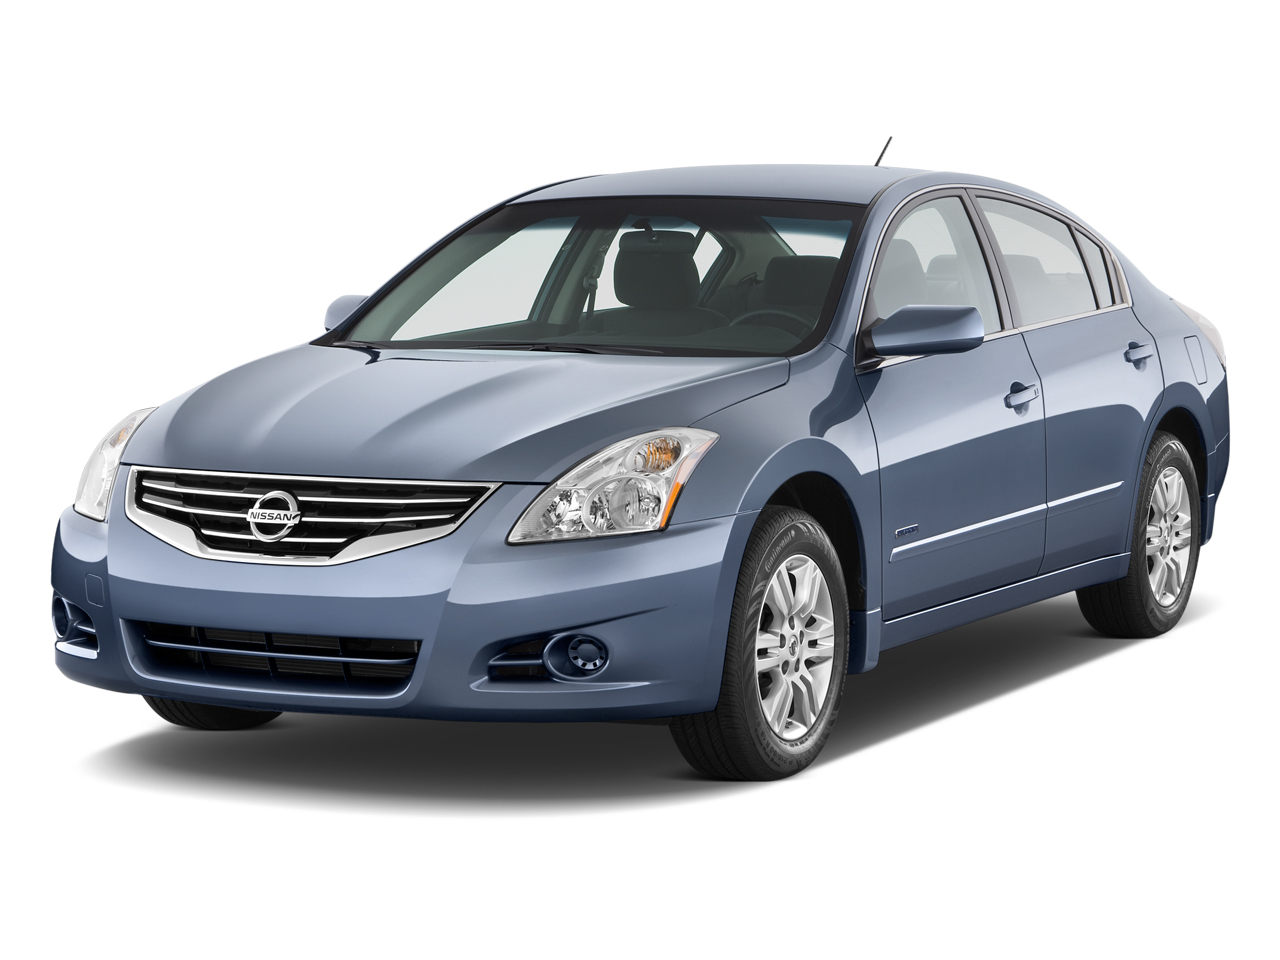 2011 nissan altima review ratings specs prices and photos the car connection. Black Bedroom Furniture Sets. Home Design Ideas